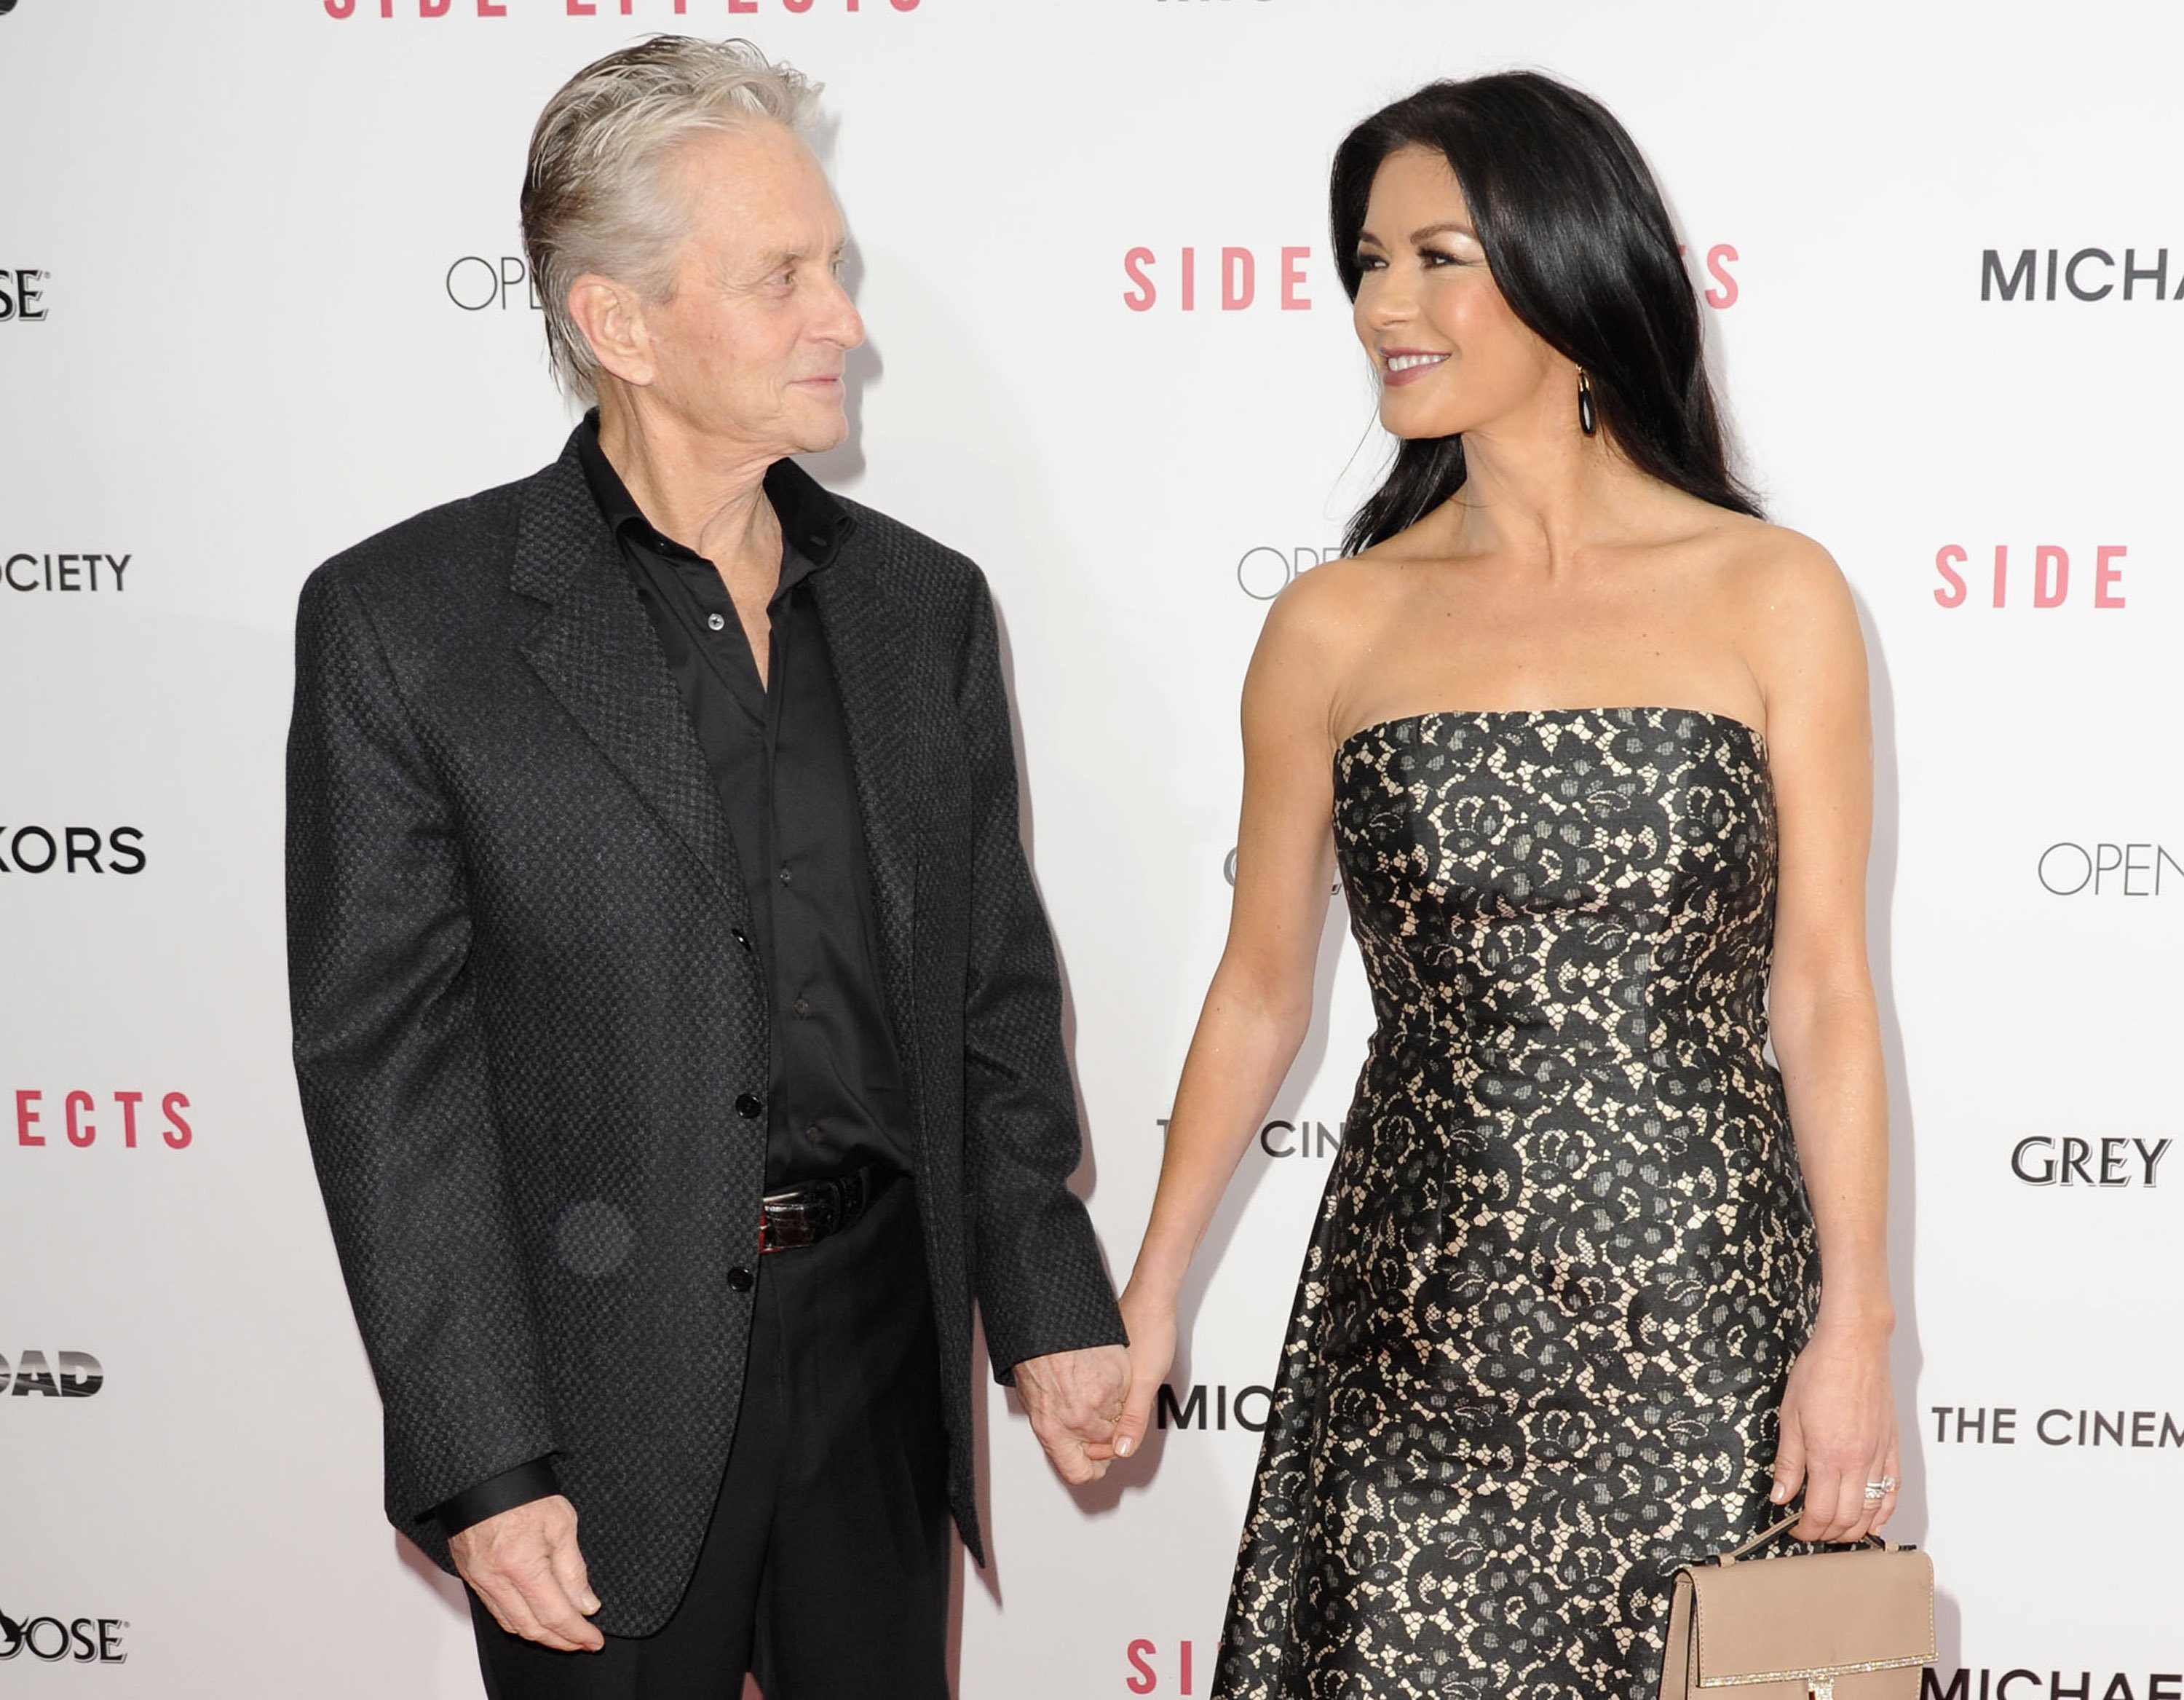 "Michael Douglas and Catherine Zeta-Jones attend the premiere of ""Side Effects"" in New York City on January 31, 2013 